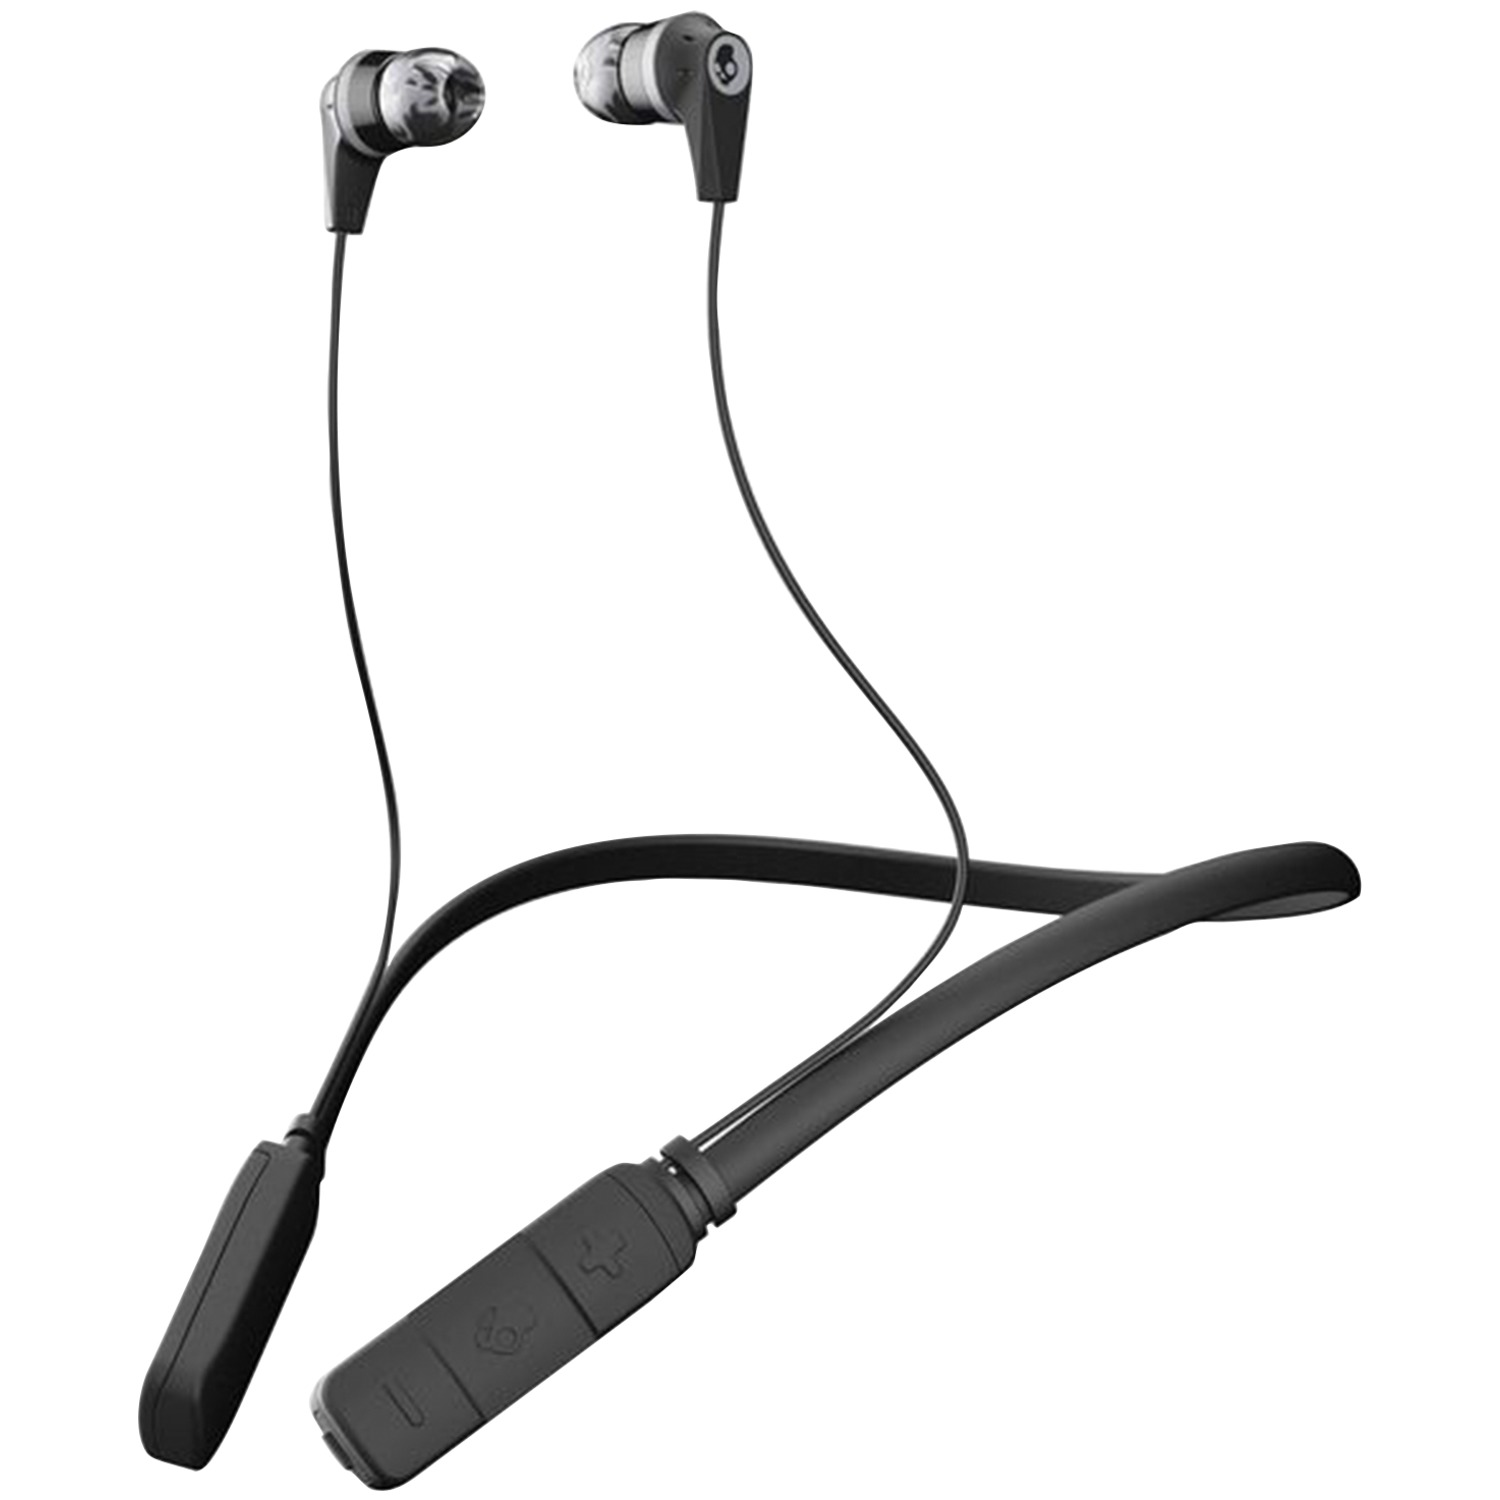 hight resolution of skullcandy s2ikw j509 ink d bluetooth earbuds with microphone black gray